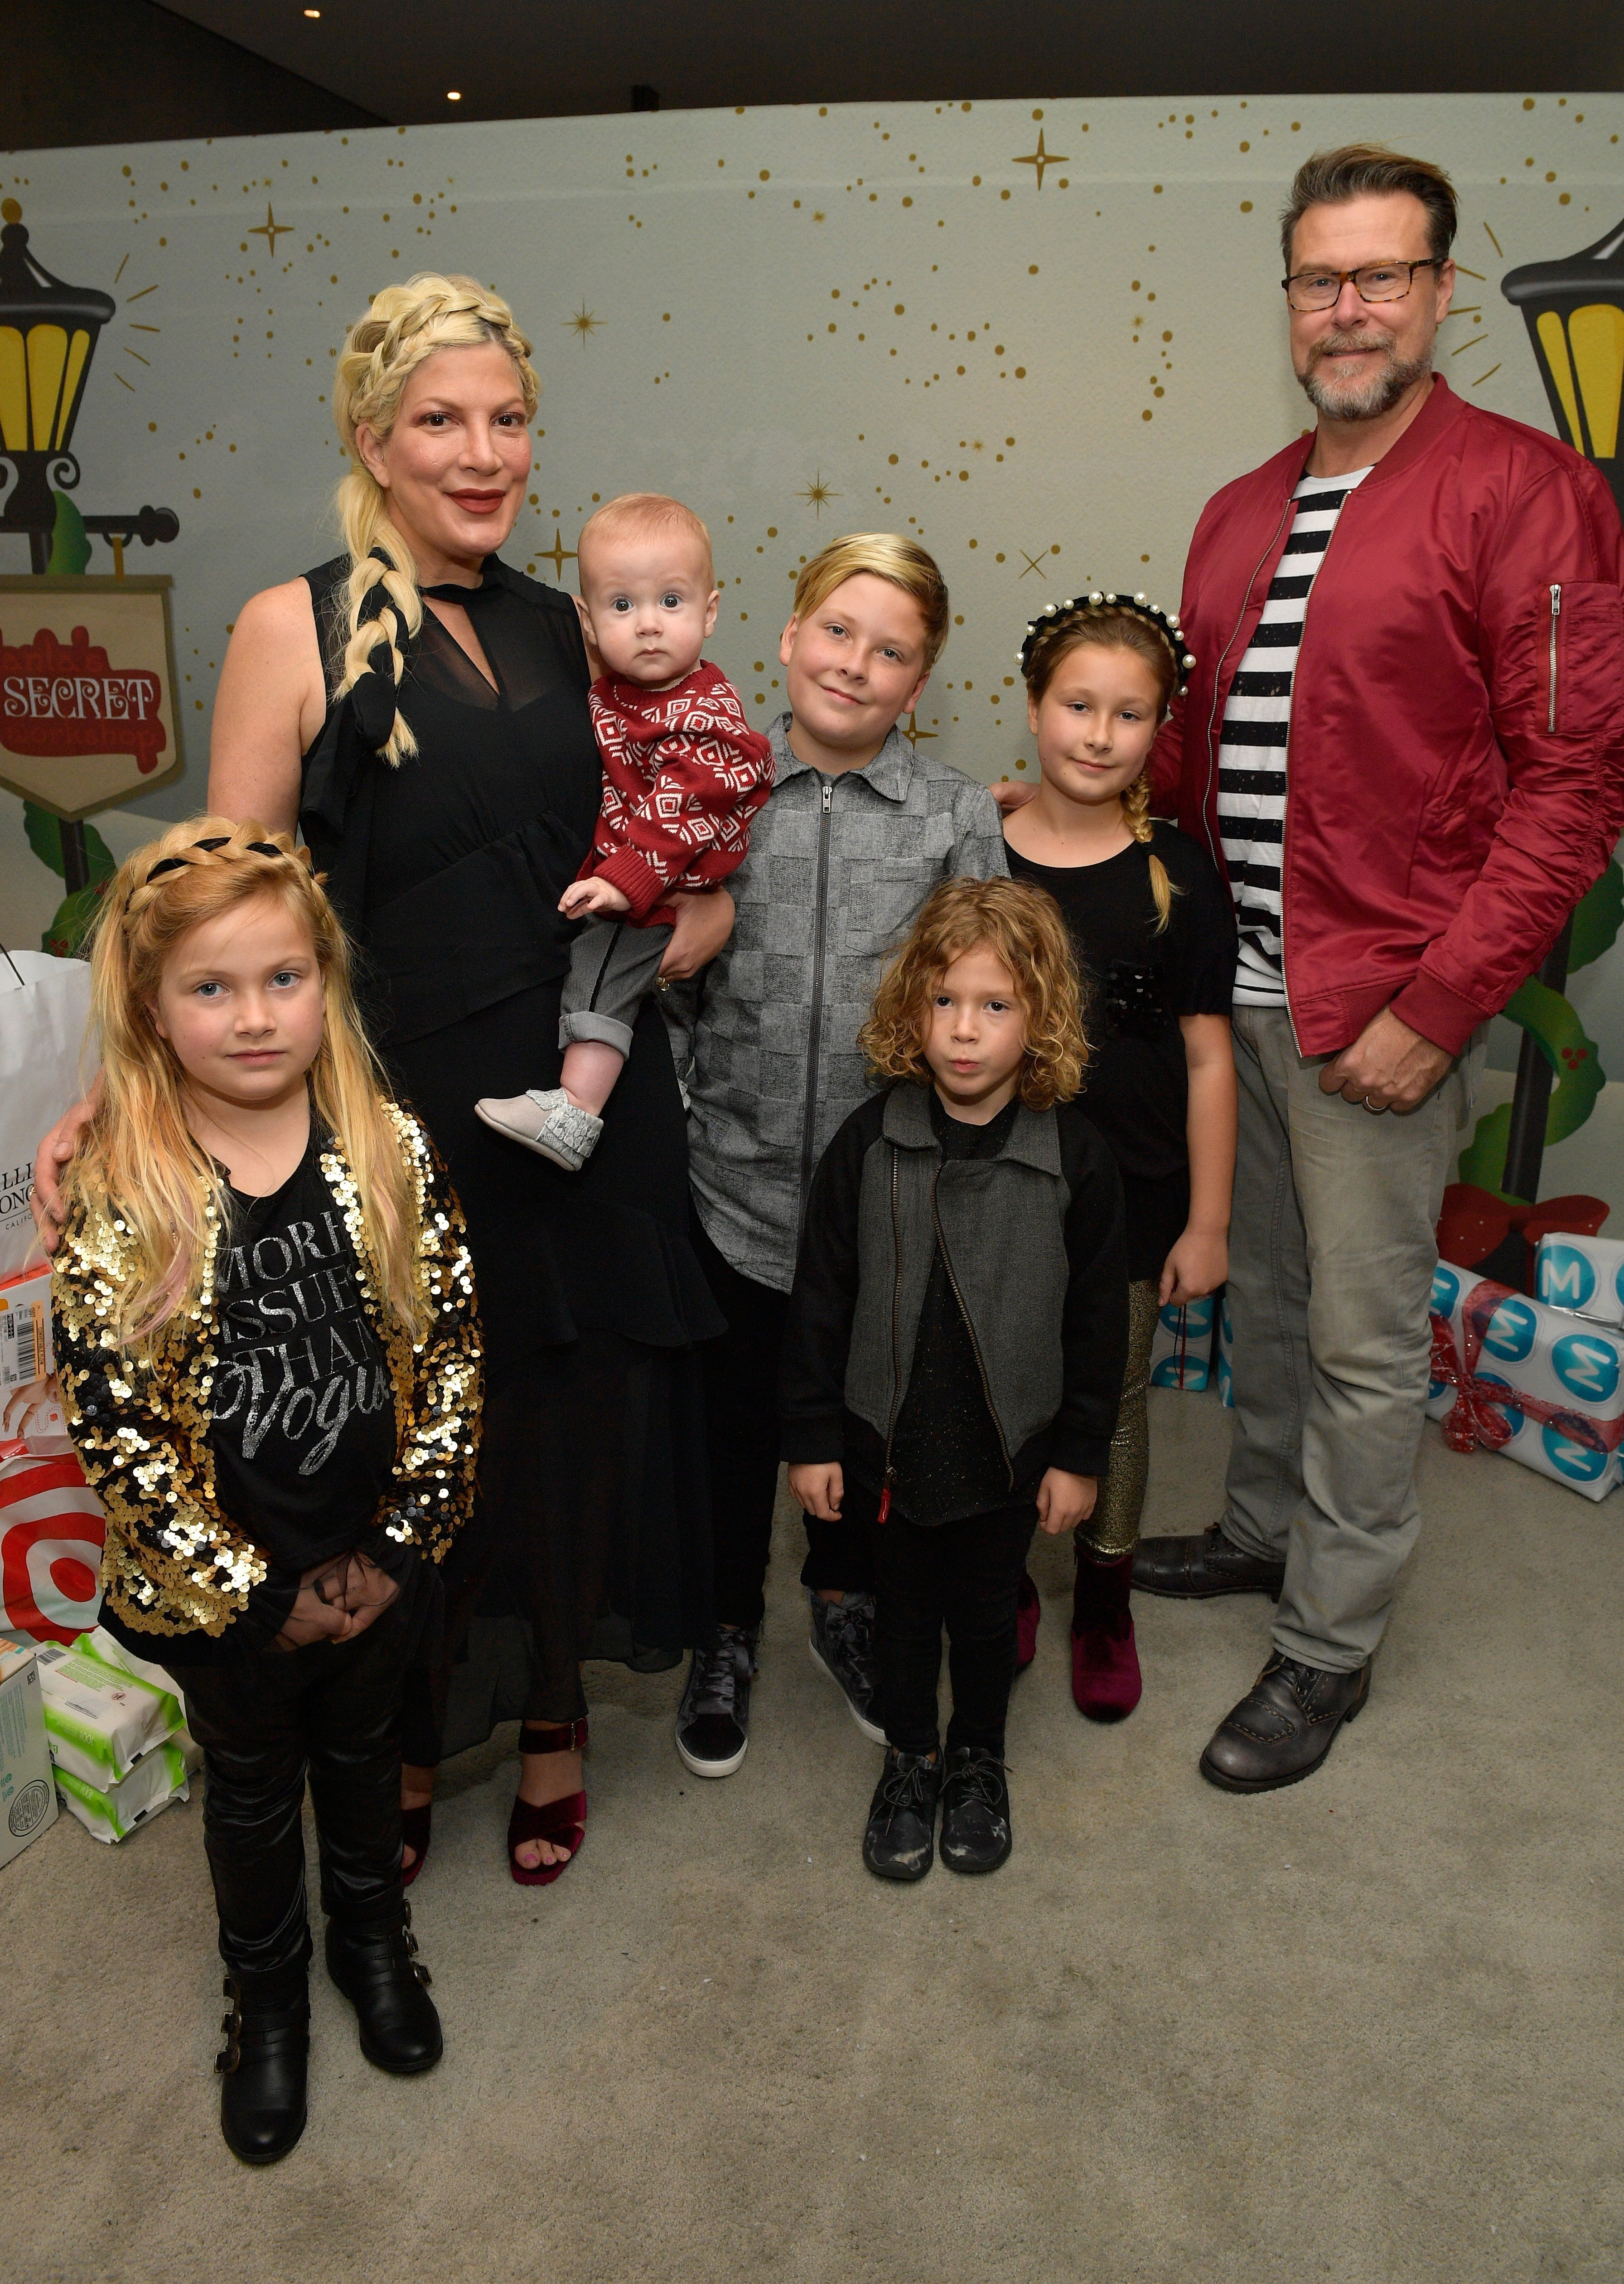 Tori Spelling, Dean McDermott, and their children at the 7th Annual Santa's Secret Workshop benefiting LA Family Housing. | Source: Getty Images